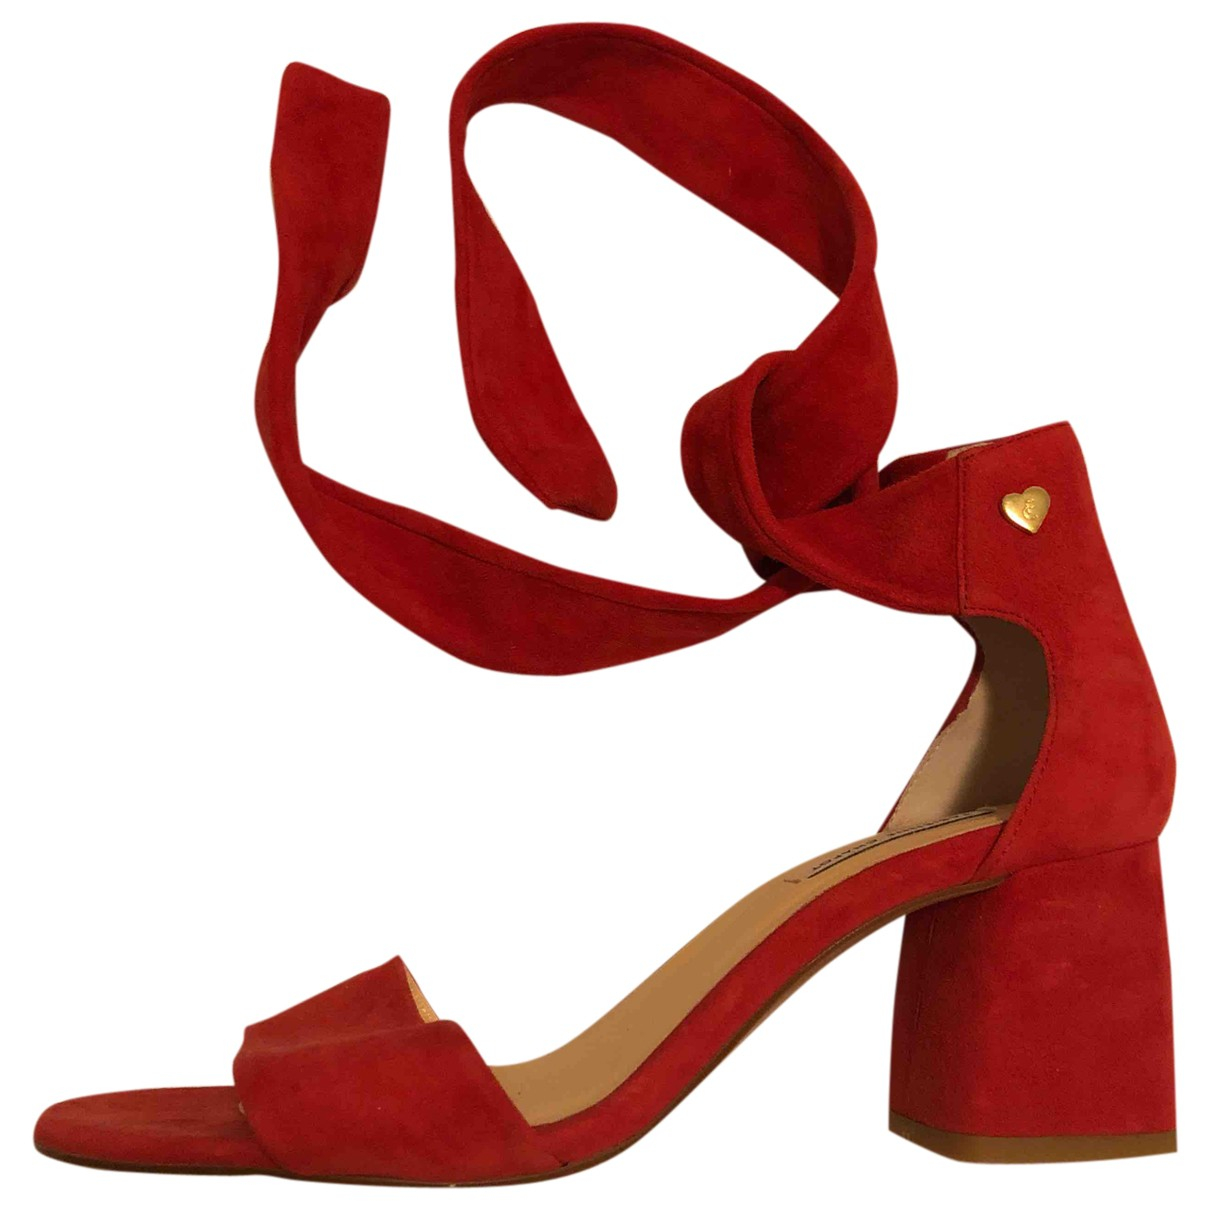 Fabienne Chapot N Red Leather Sandals for Women 38 EU